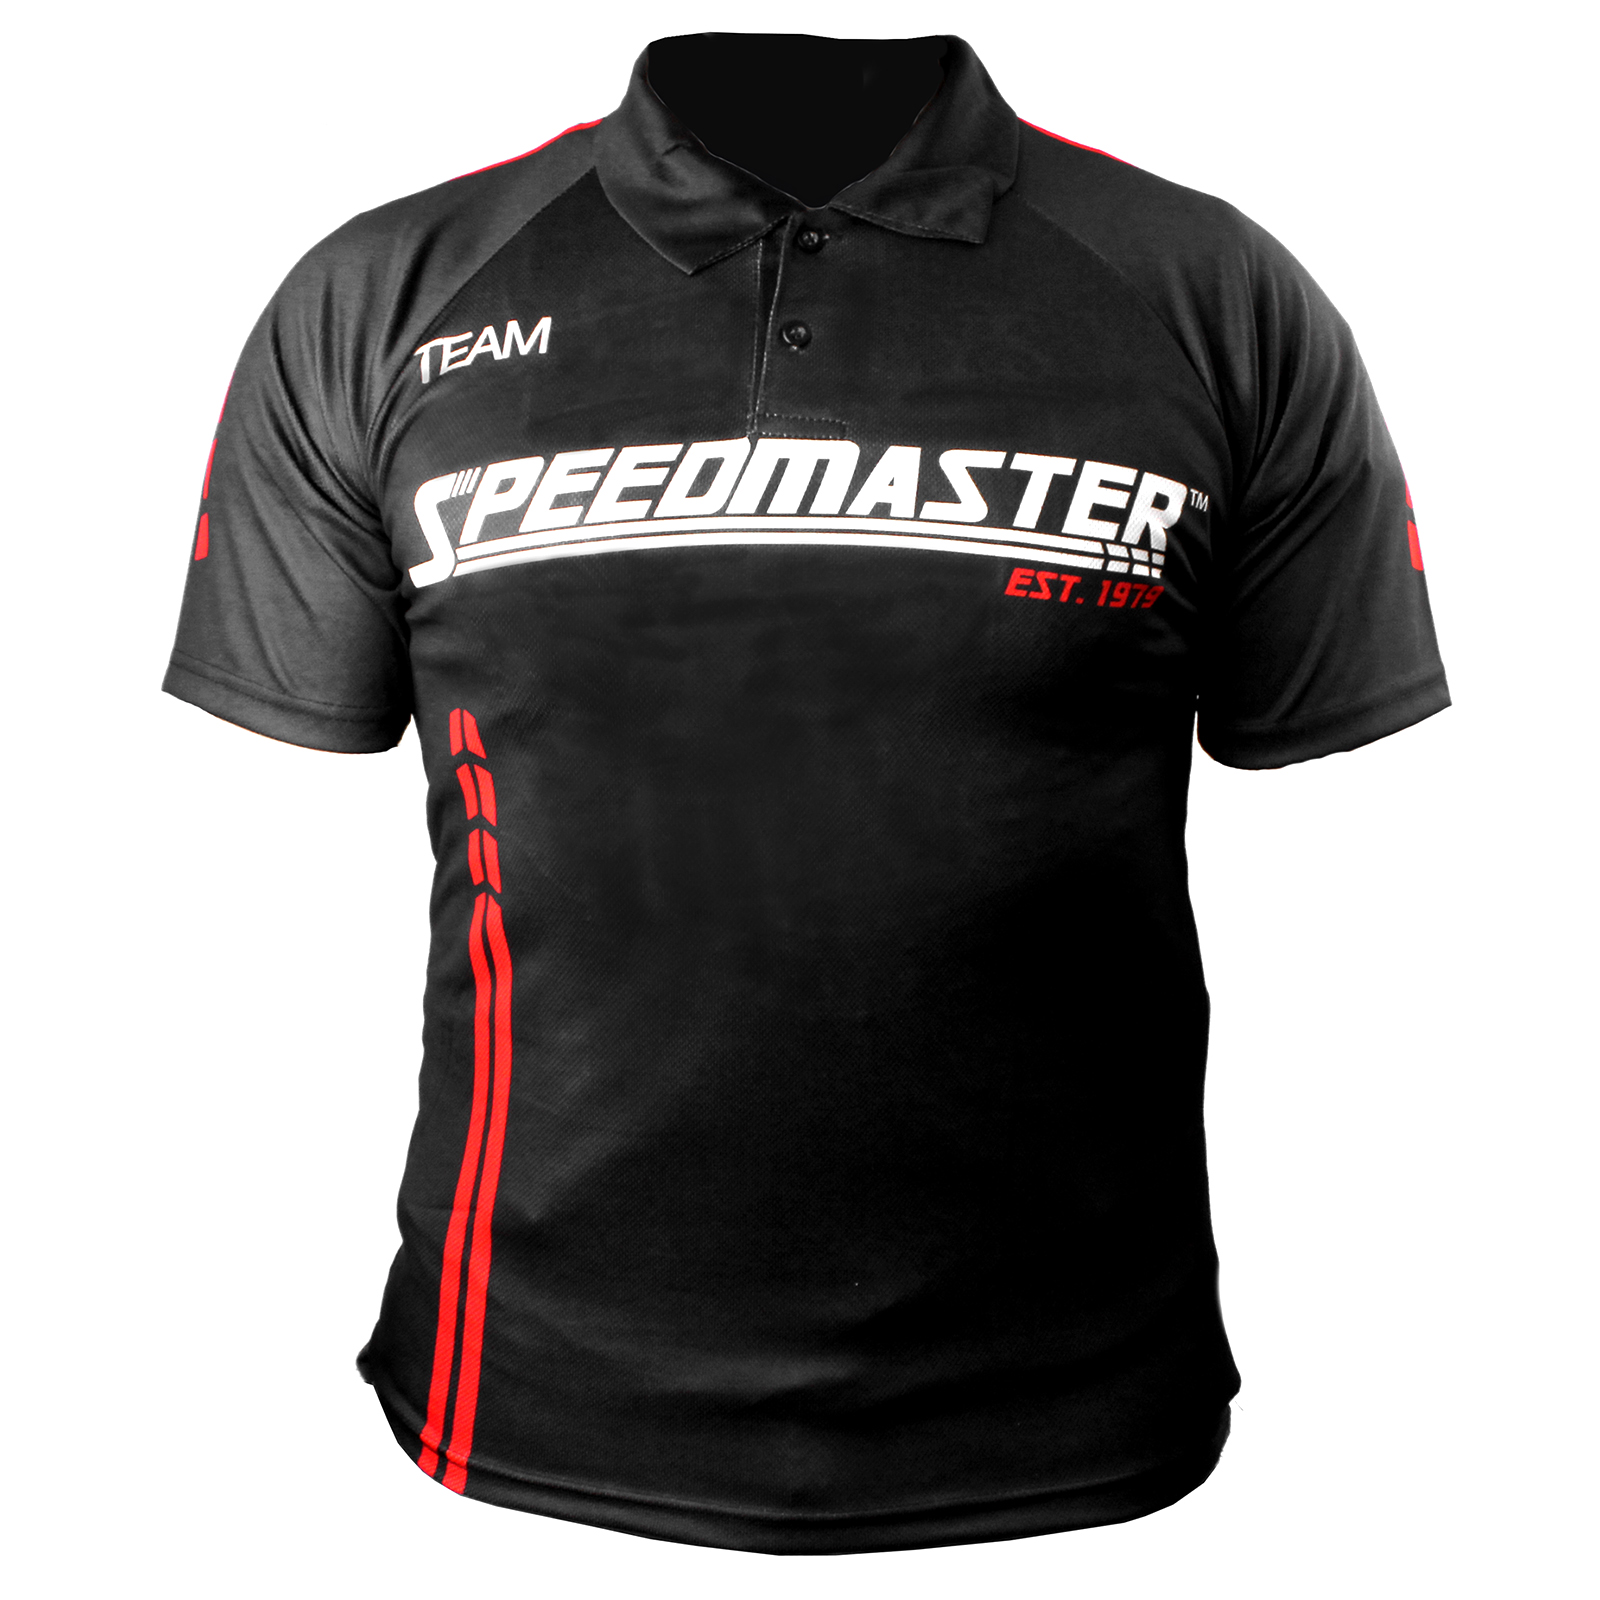 Speedmaster Team Jersey / Polo Shirt - XXX Large 3XL